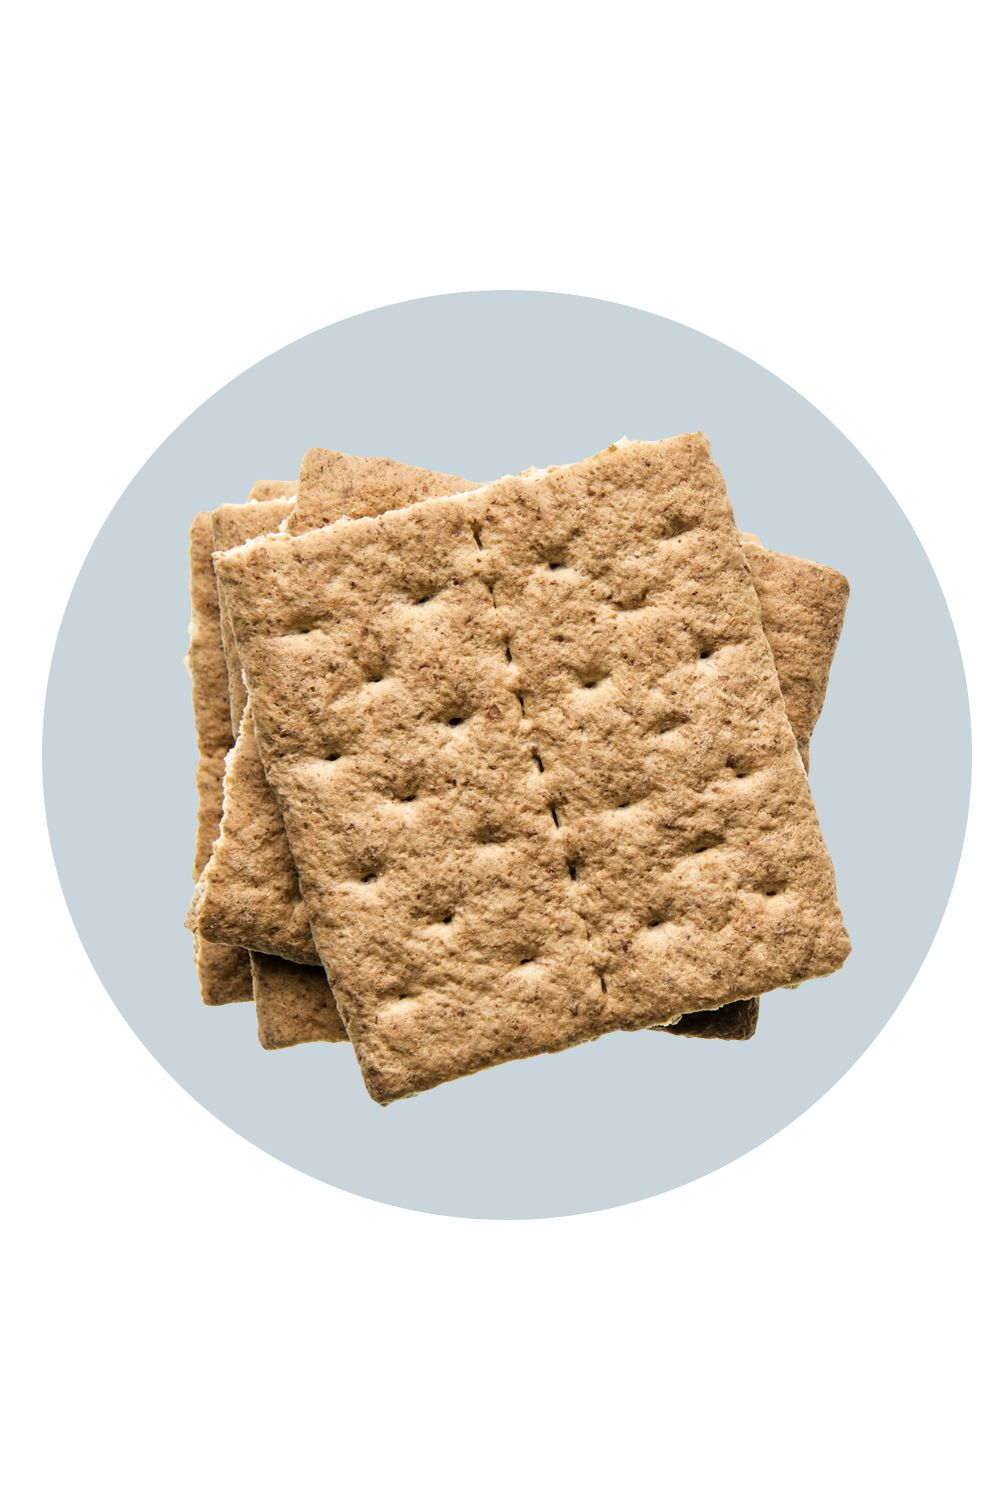 "<p>Try Batayneh's easy recipe for a graham ""dippers"" for a sweet, yet filling, snack. Spread 1/4 cup of low-fat ricotta cheese on top of one graham cracker and sprinkle with cinnamon. With only 115 calories and 4 grams of fat, this snack has 8 grams of <a href=""http://www.redbookmag.com/body/healthy-eating/recipes/g660/protein-breakfast-foods/"" target=""_blank"">protein</a> to help you <a href=""http://www.redbookmag.com/body/healthy-eating/advice/g574/25-lazy-health-tips/"" target=""_blank"">stay fuller</a>, longer.</p>"